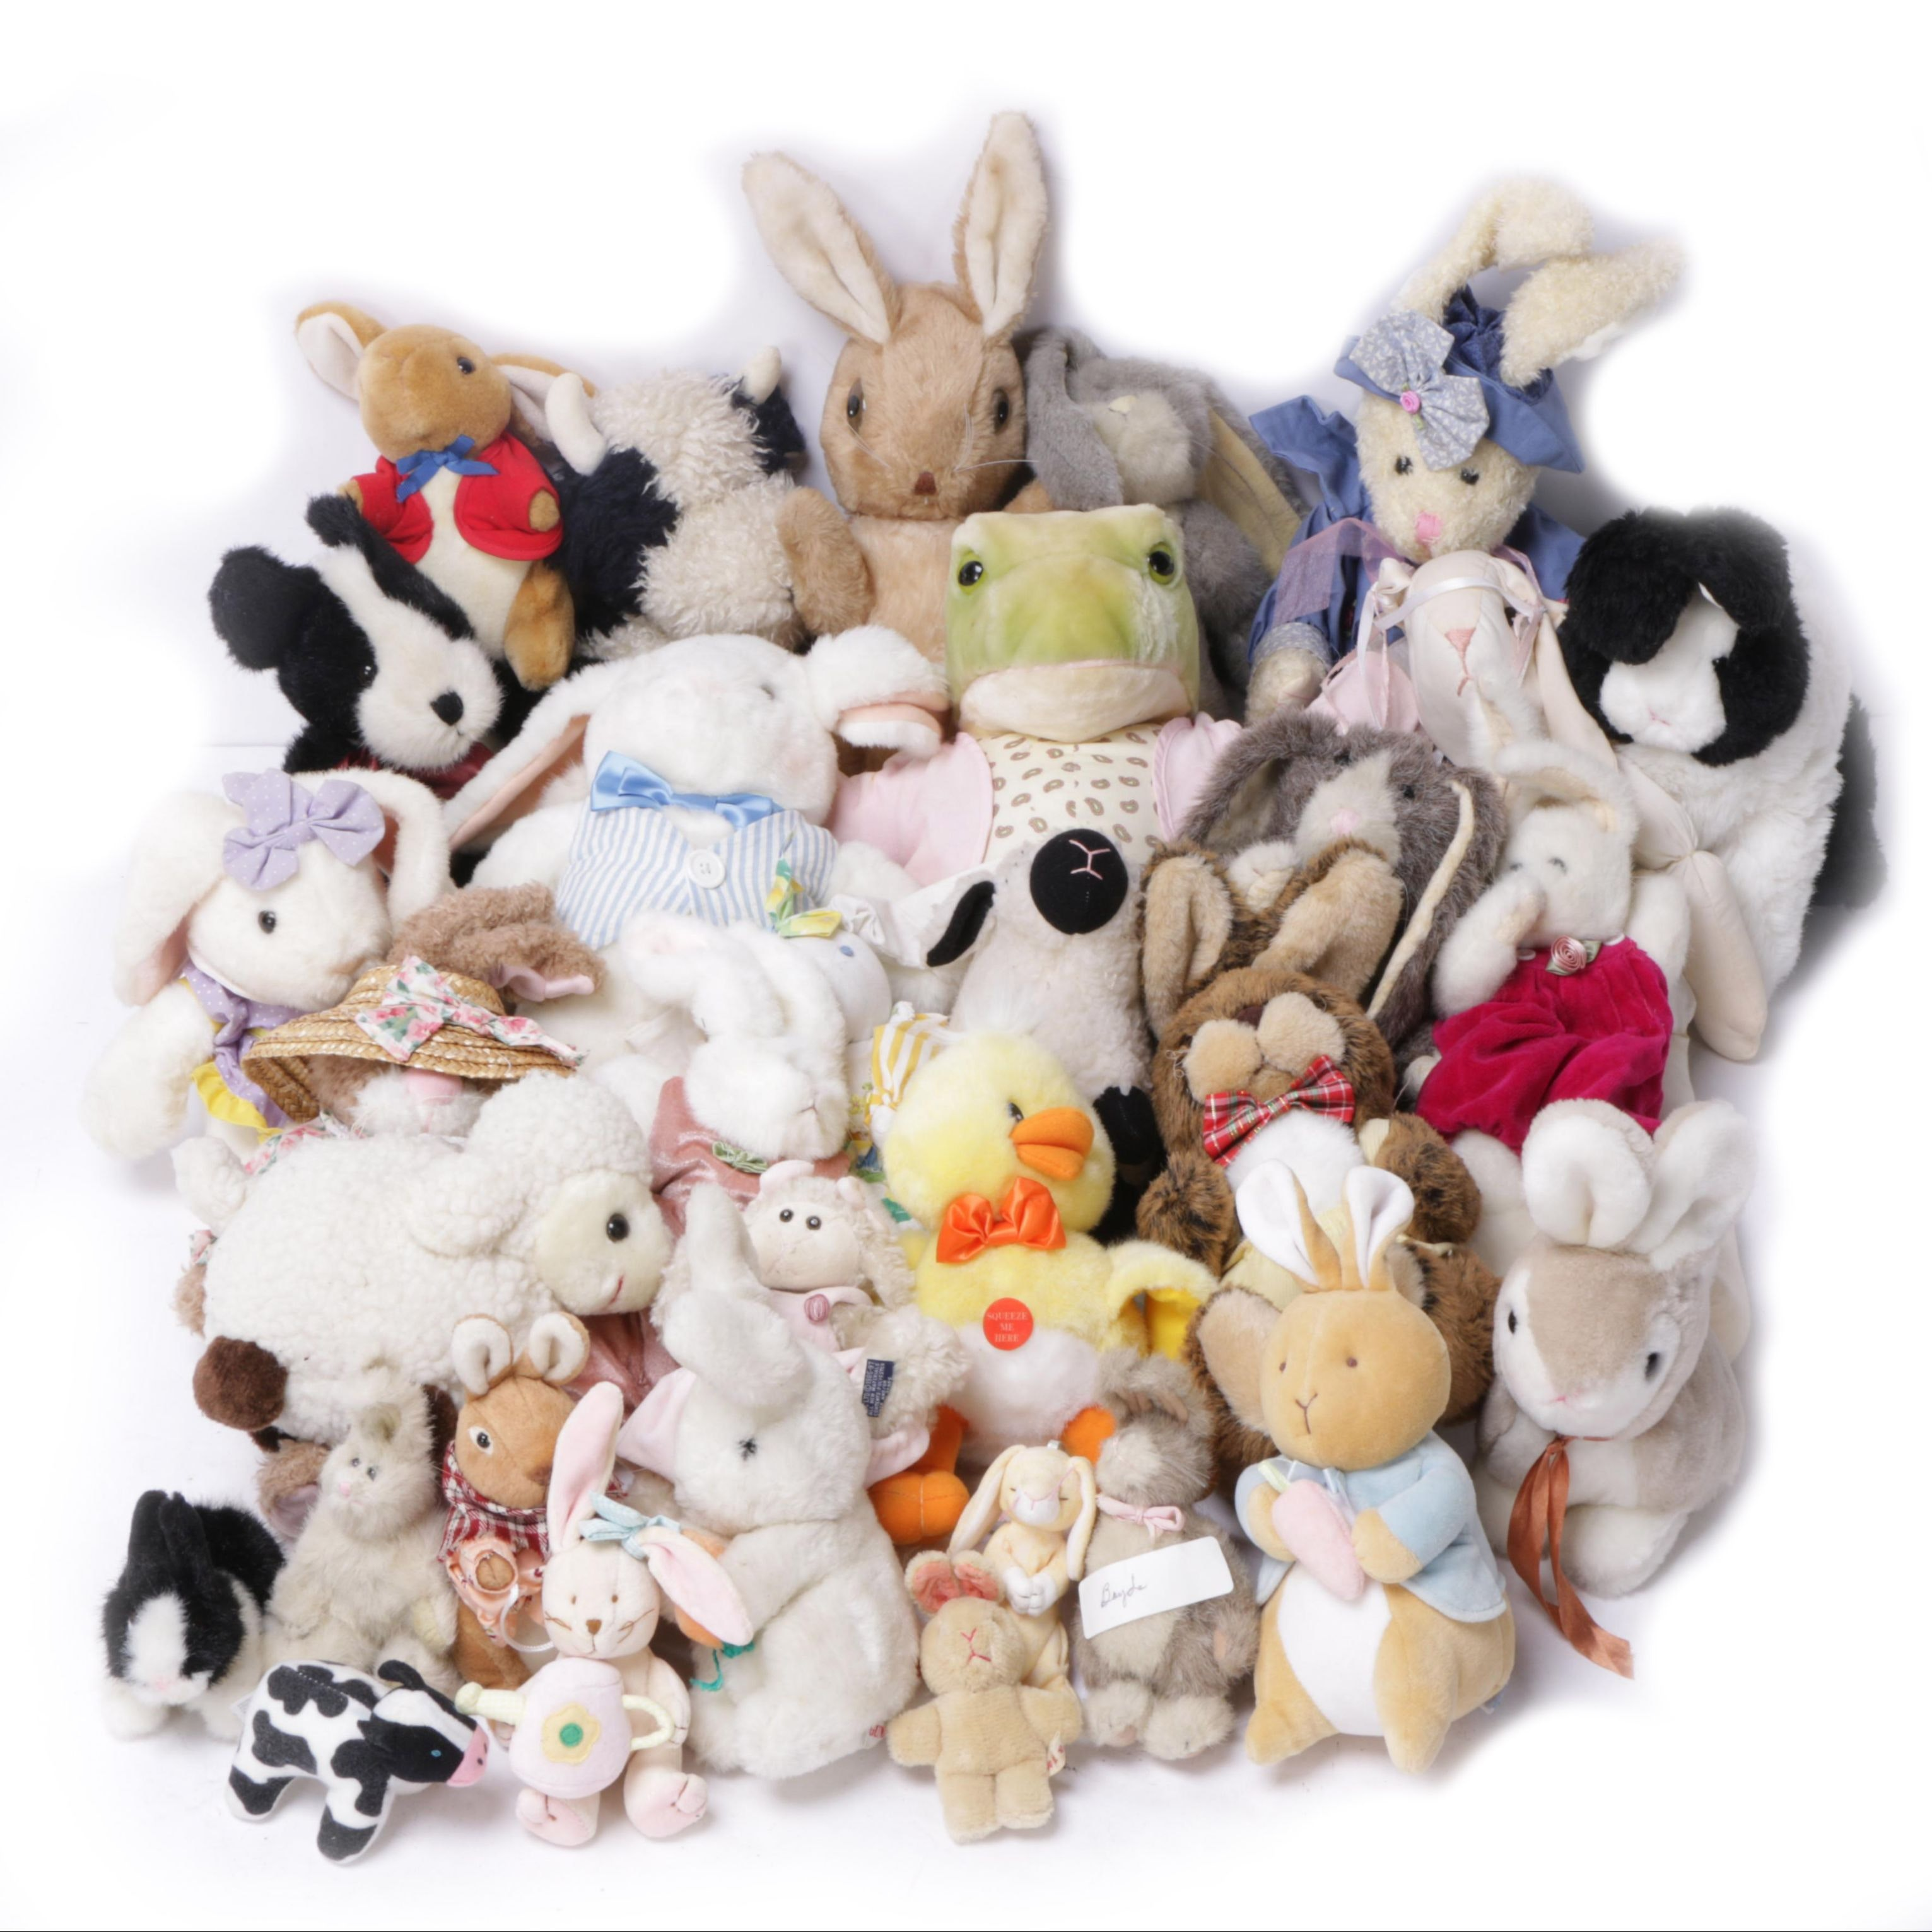 Rabbit And Farm Animal Stuffed Toys Ebth